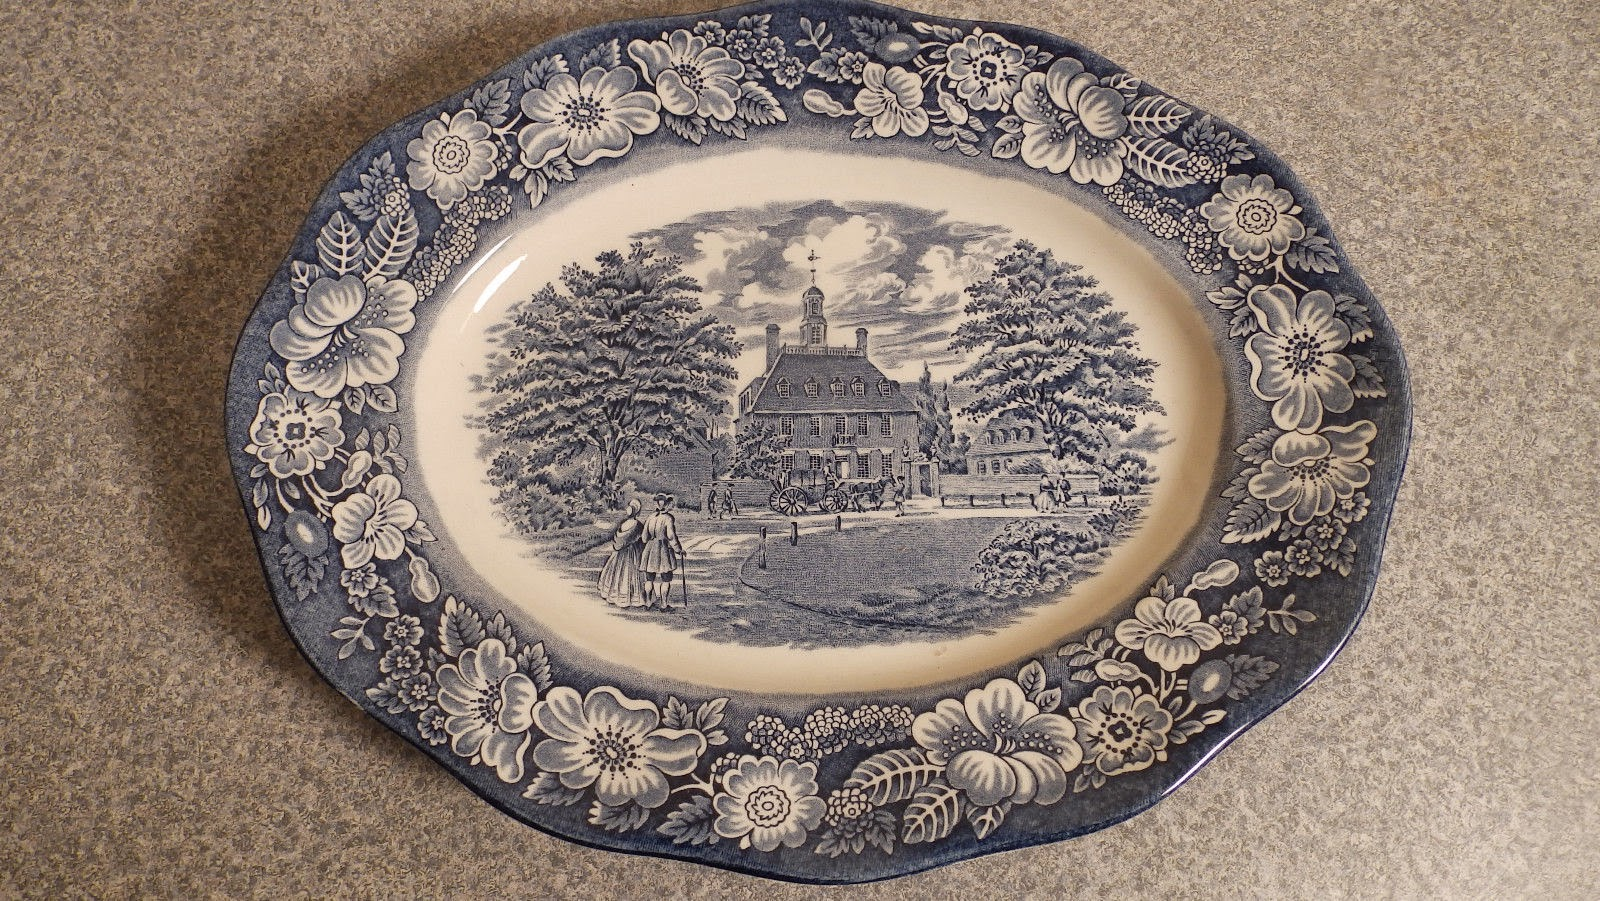 http://www.ebay.com/itm/Staffordshire-Liberty-Blue-platter-12-Governors-Mansion-Williamsburg-Va-/321691128177?pt=LH_DefaultDomain_0&hash=item4ae6491171